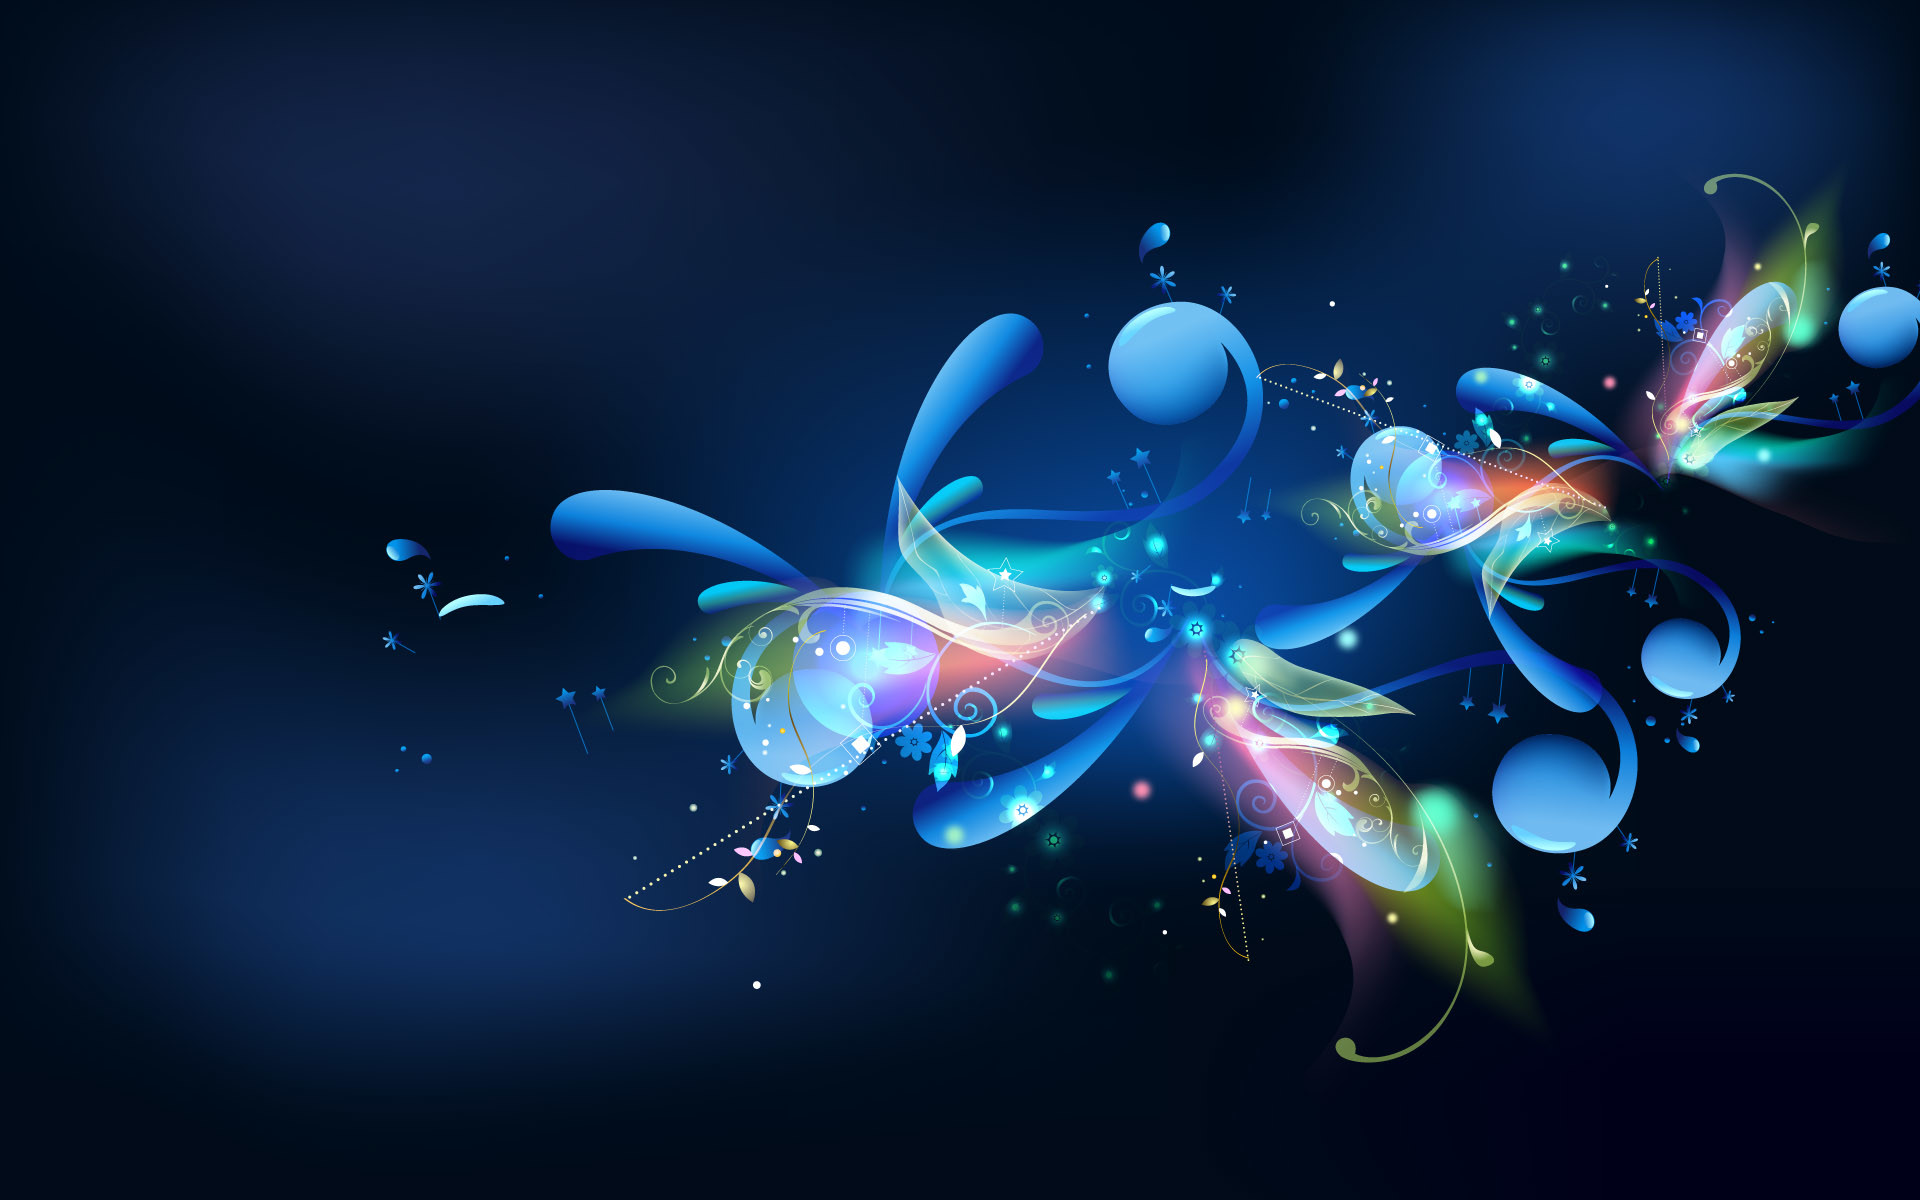 Blue Abstract Wallpaper For Pc 56 Images